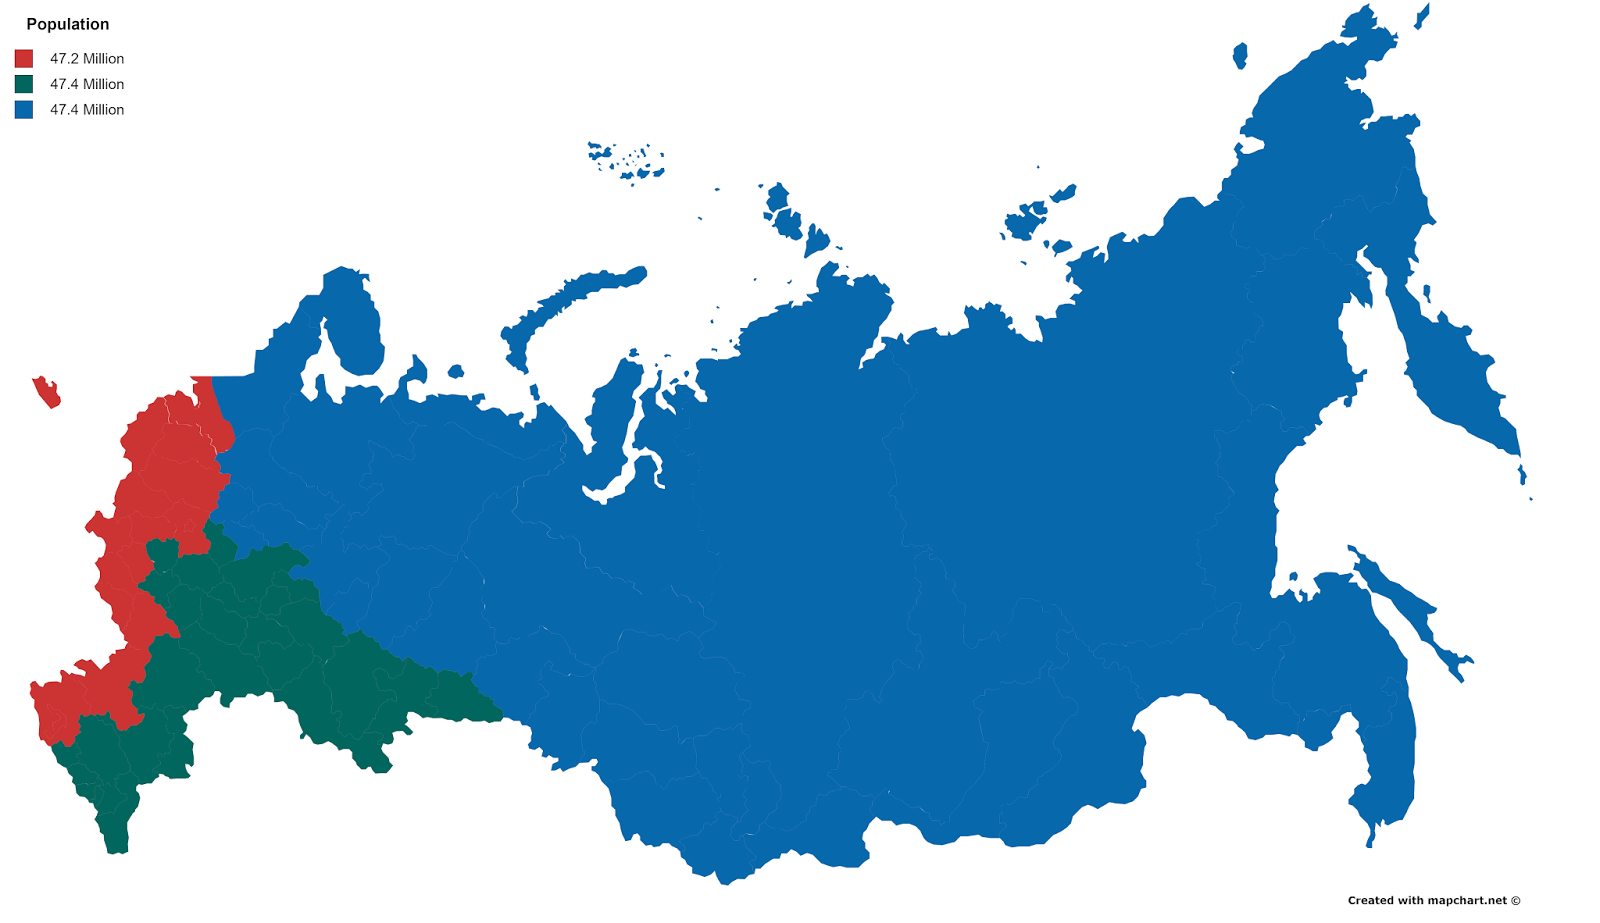 Russian population split into 3 equal areas